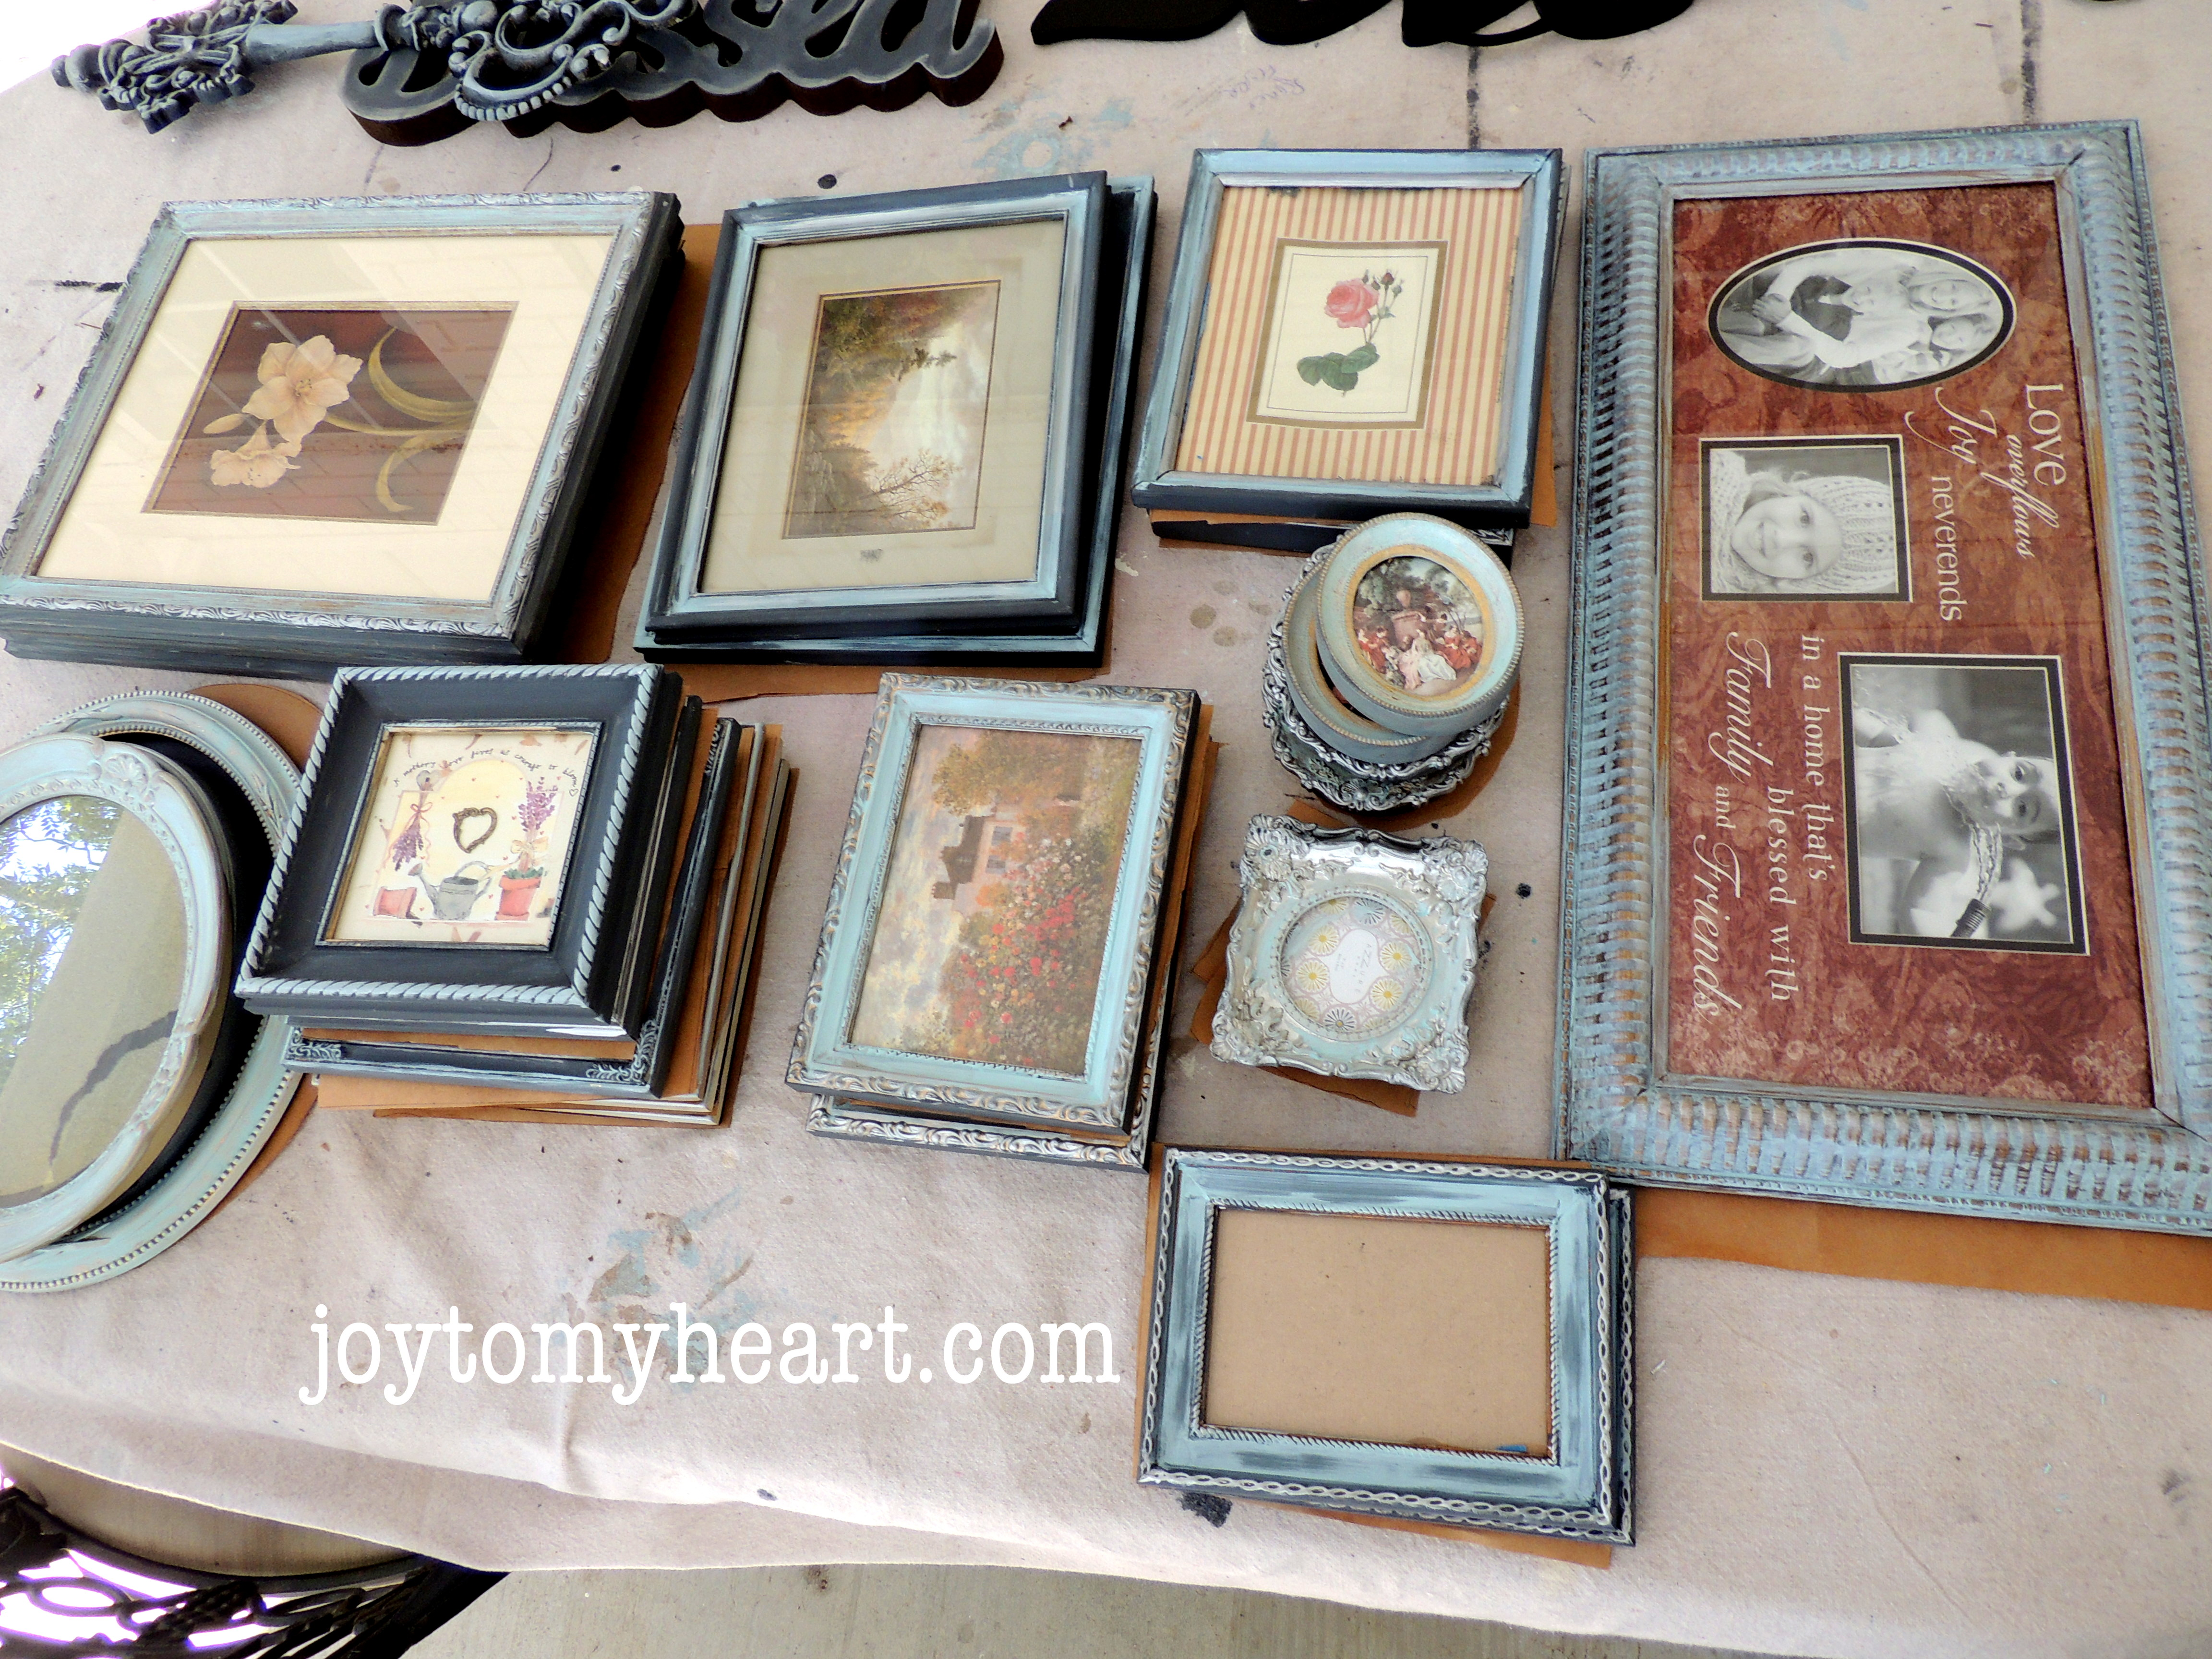 Designer Photo Gallery on a Budget - Page 2 of 2 - Joy To My Heart